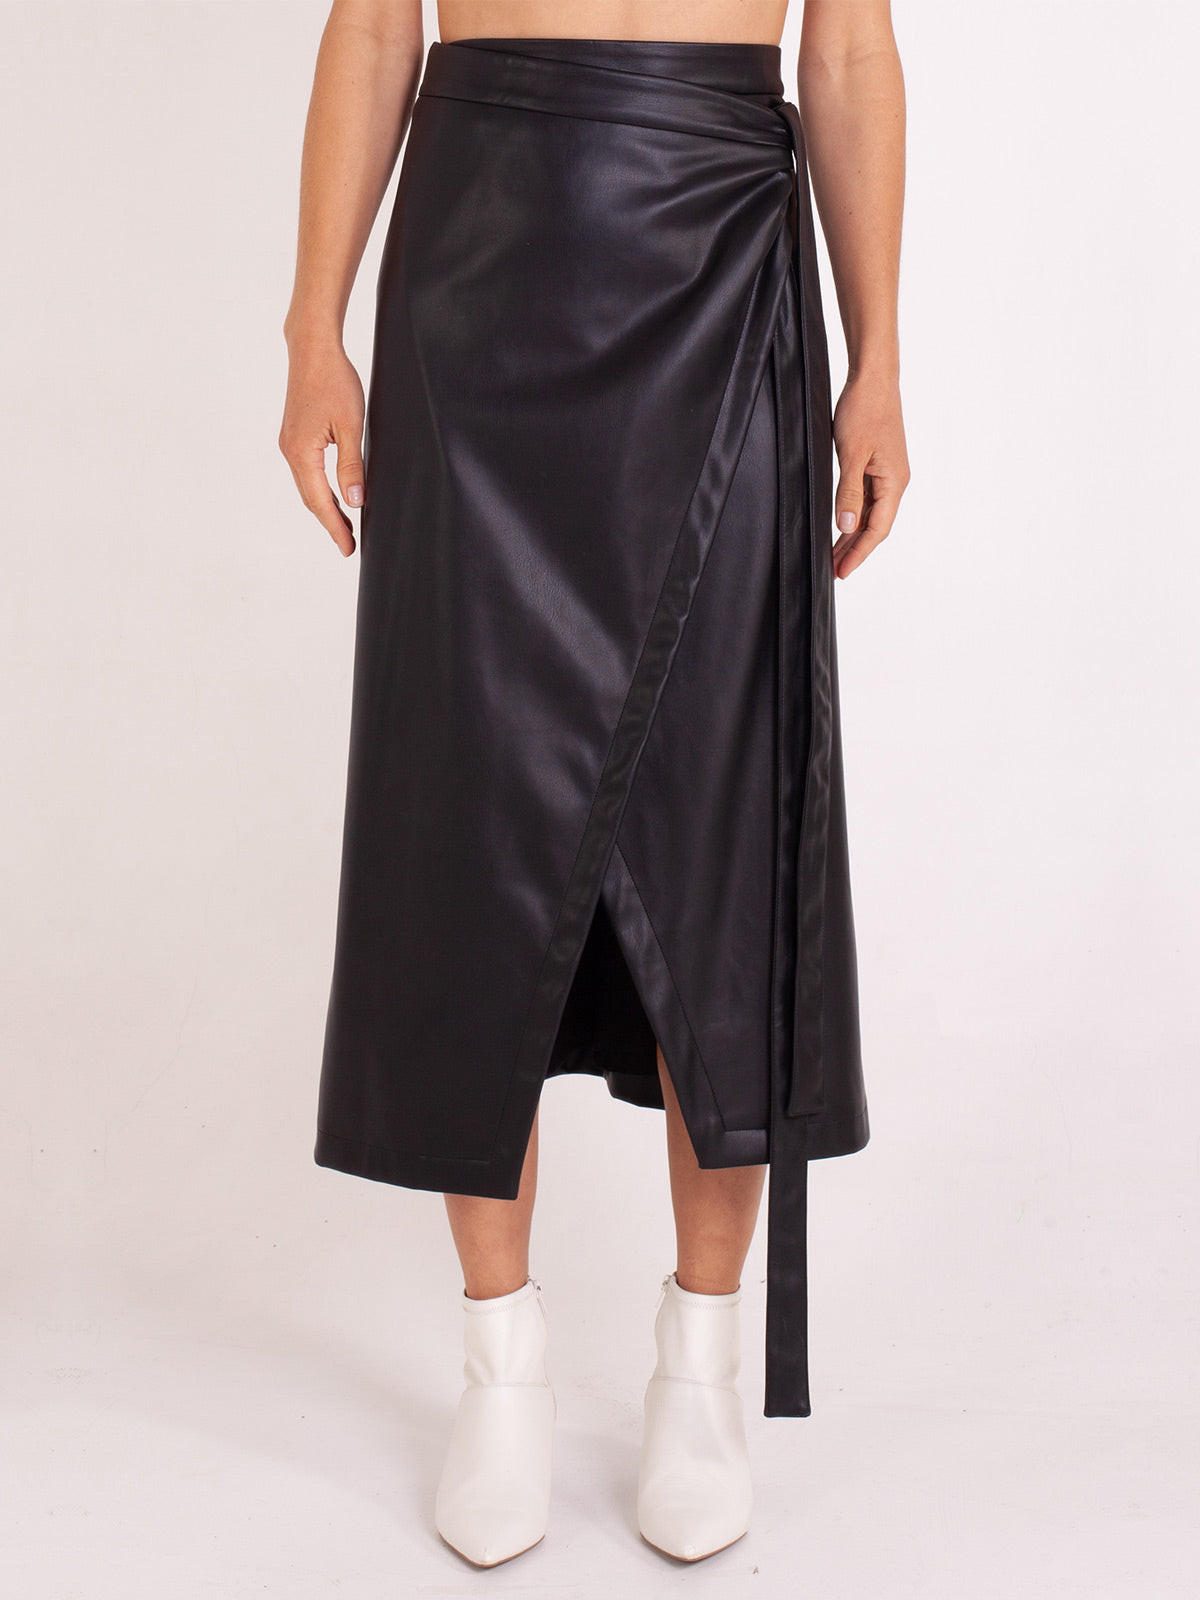 Sienna Skirt | Black